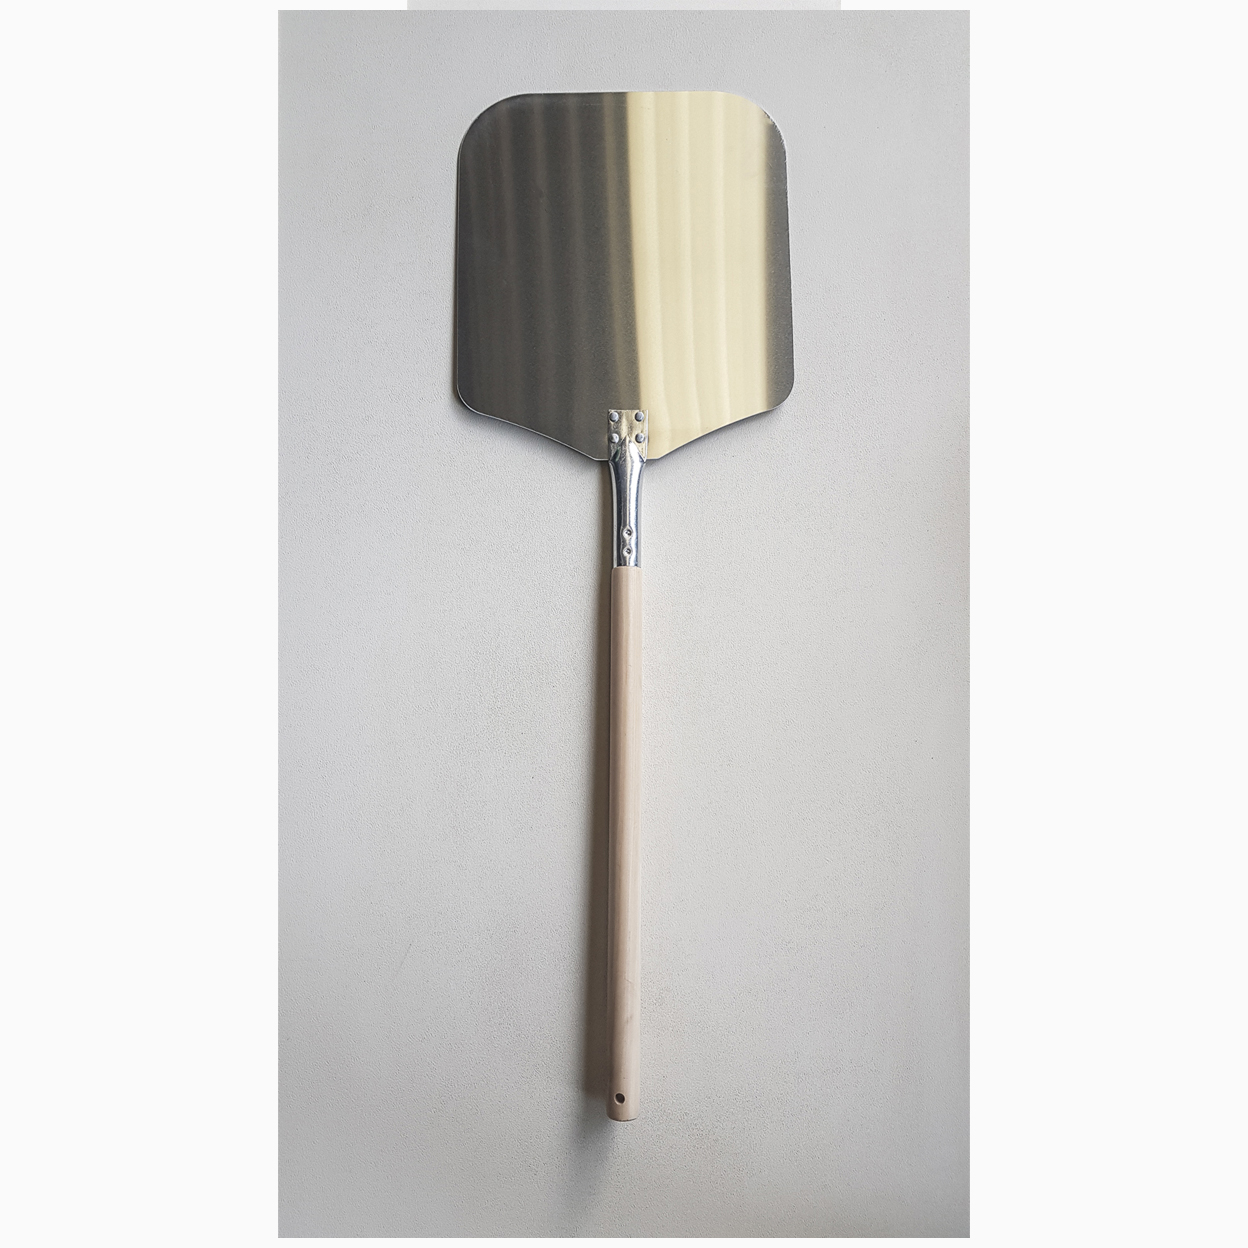 Aluminium pizza peel with wood handle